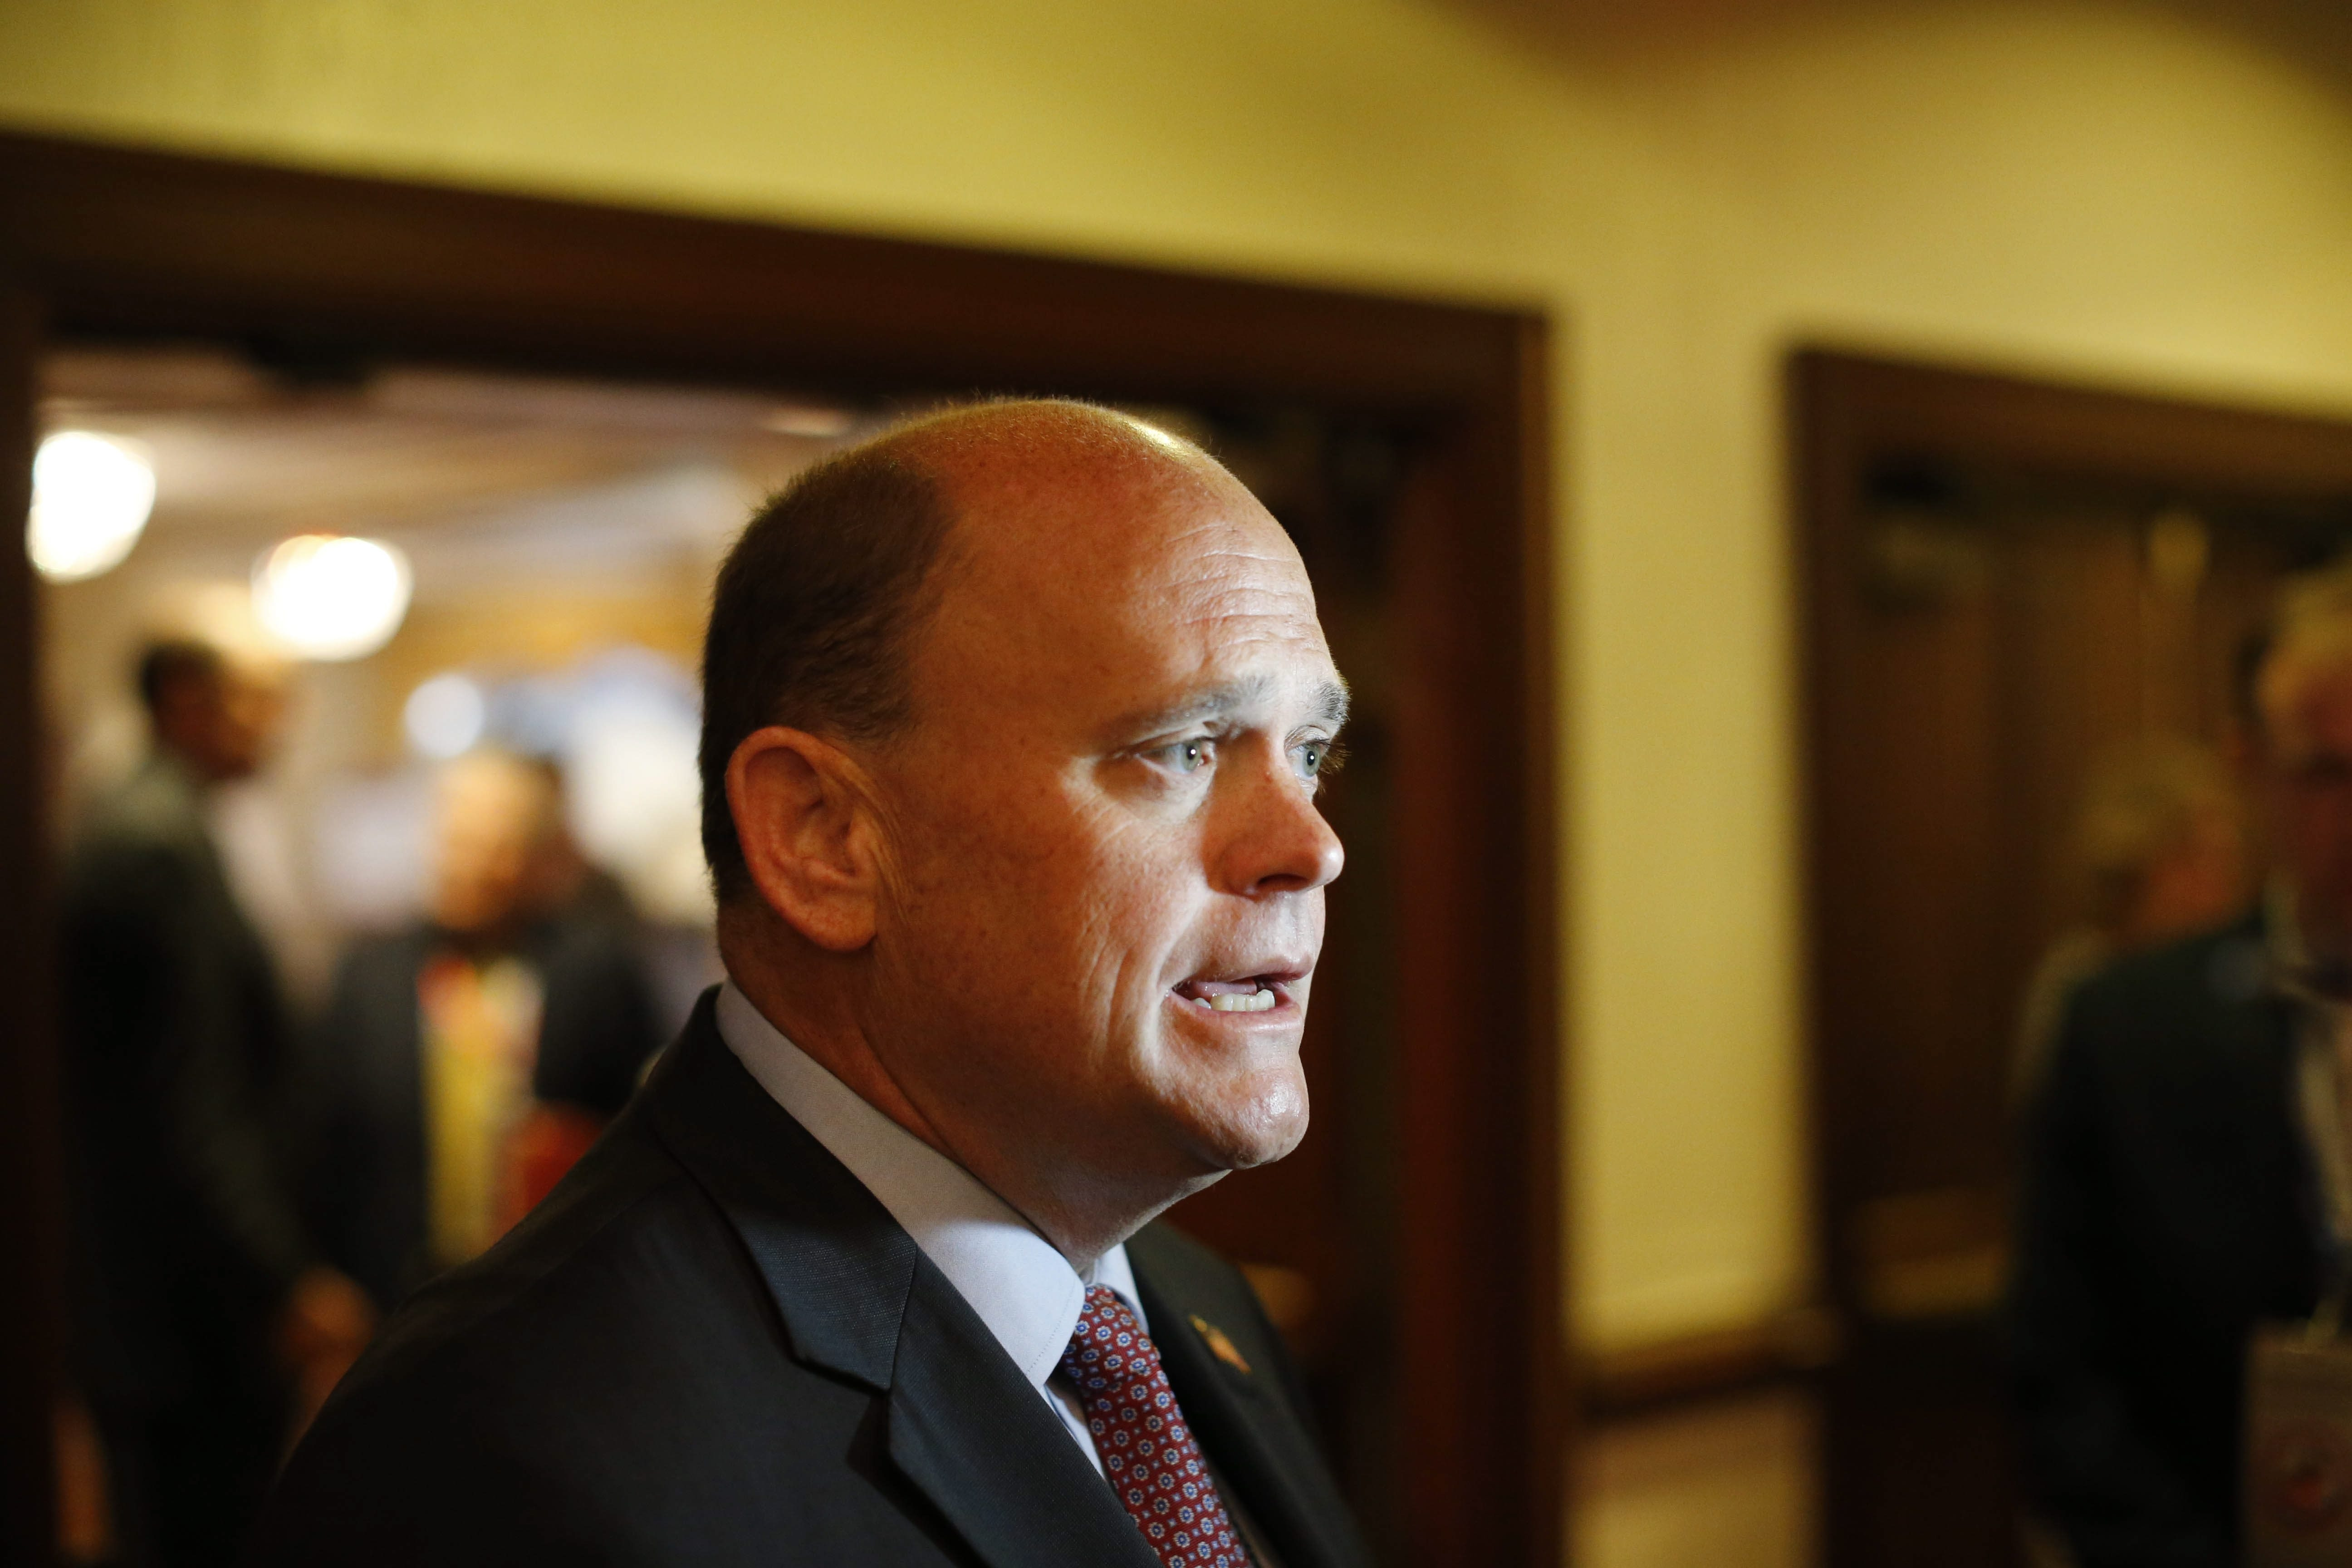 """Rep. Tom Reed, of Corning, reaffirms his support for Donald Trump even as he calls Trump's recently-revealed actions """"just plain wrong and I will not defend them.""""  (Photo by Derek Gee)"""